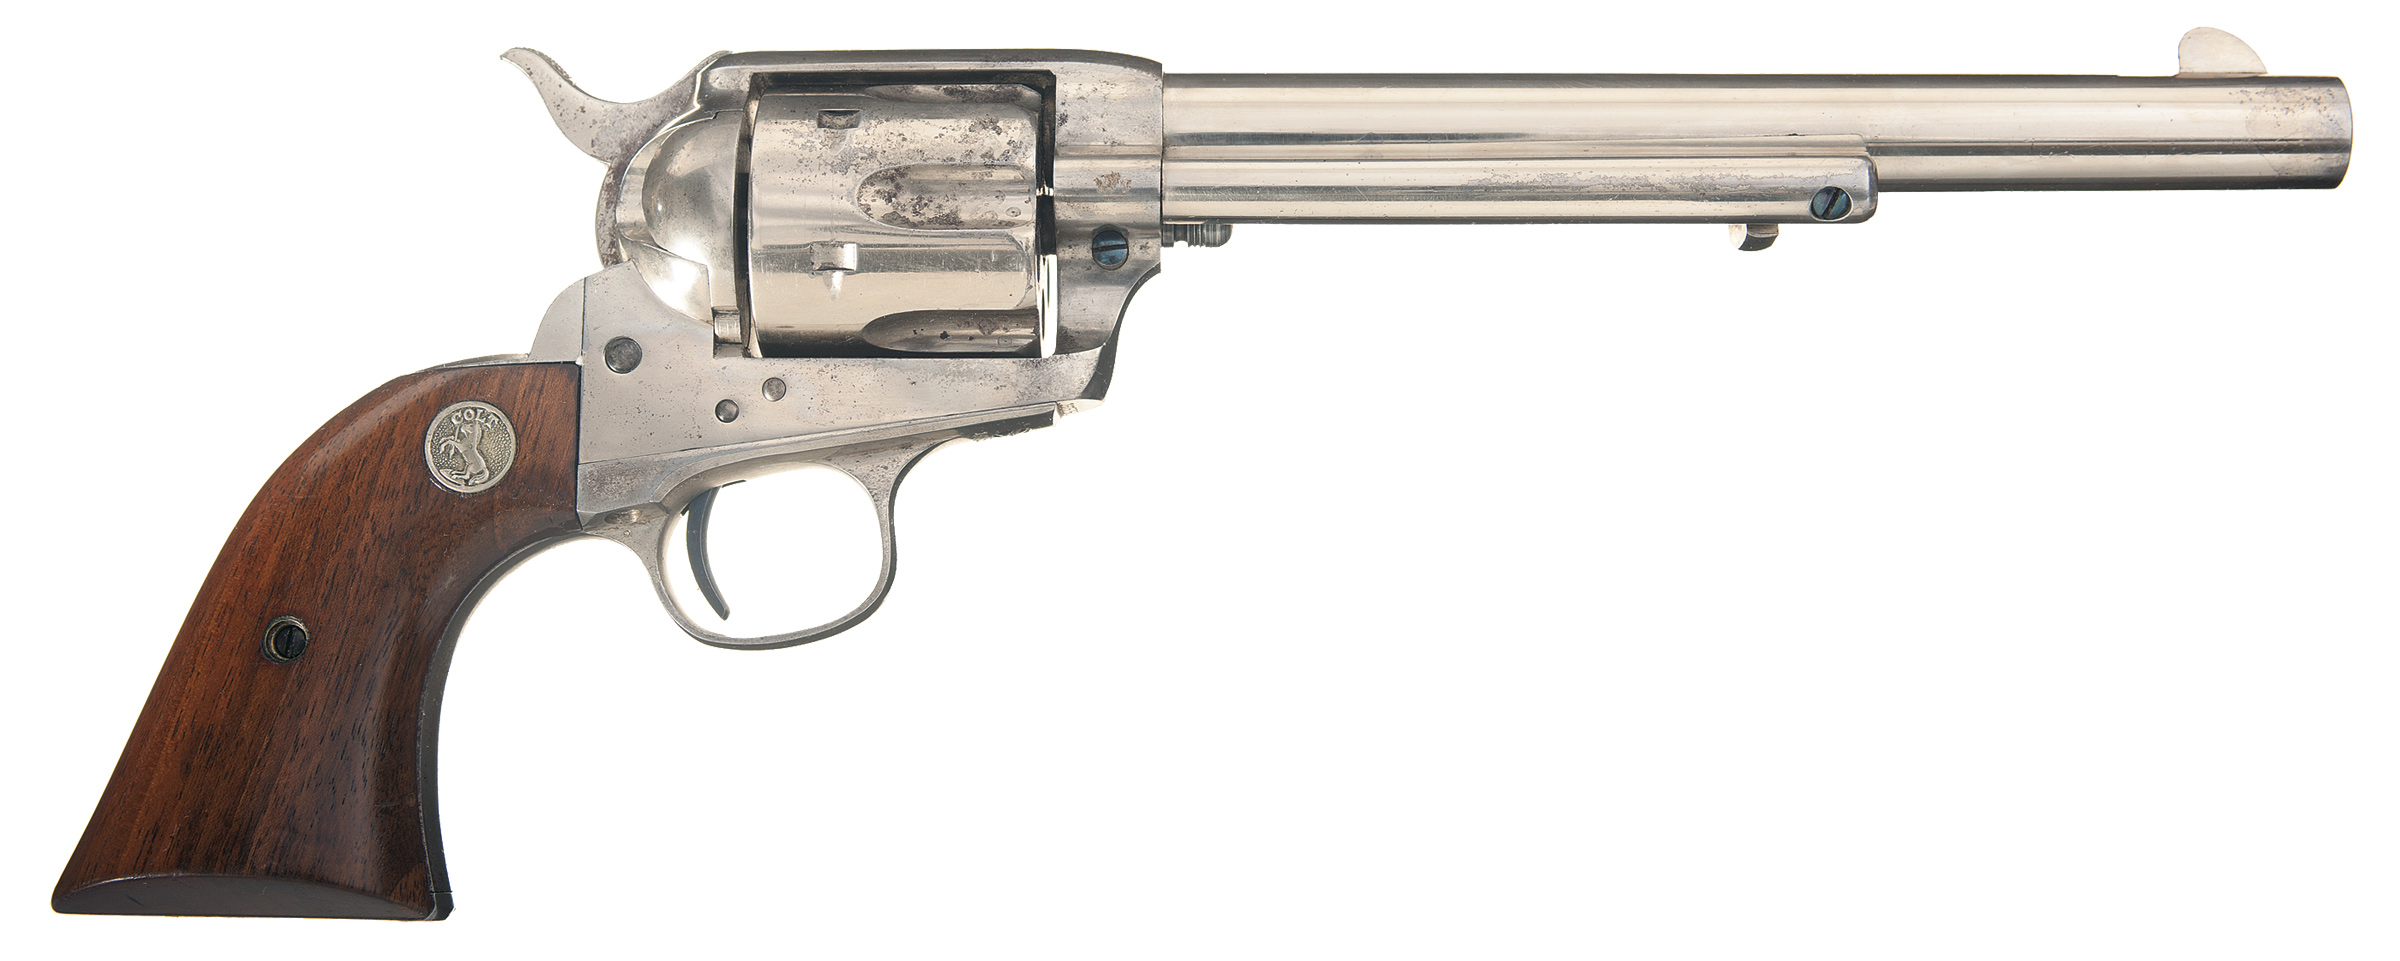 dating colt serial numbers Gun makers data, gun serial numbers, gun manufacturing information, antique guns,  colt bisley model --- flat top frame manufactured in 14 caliber's.